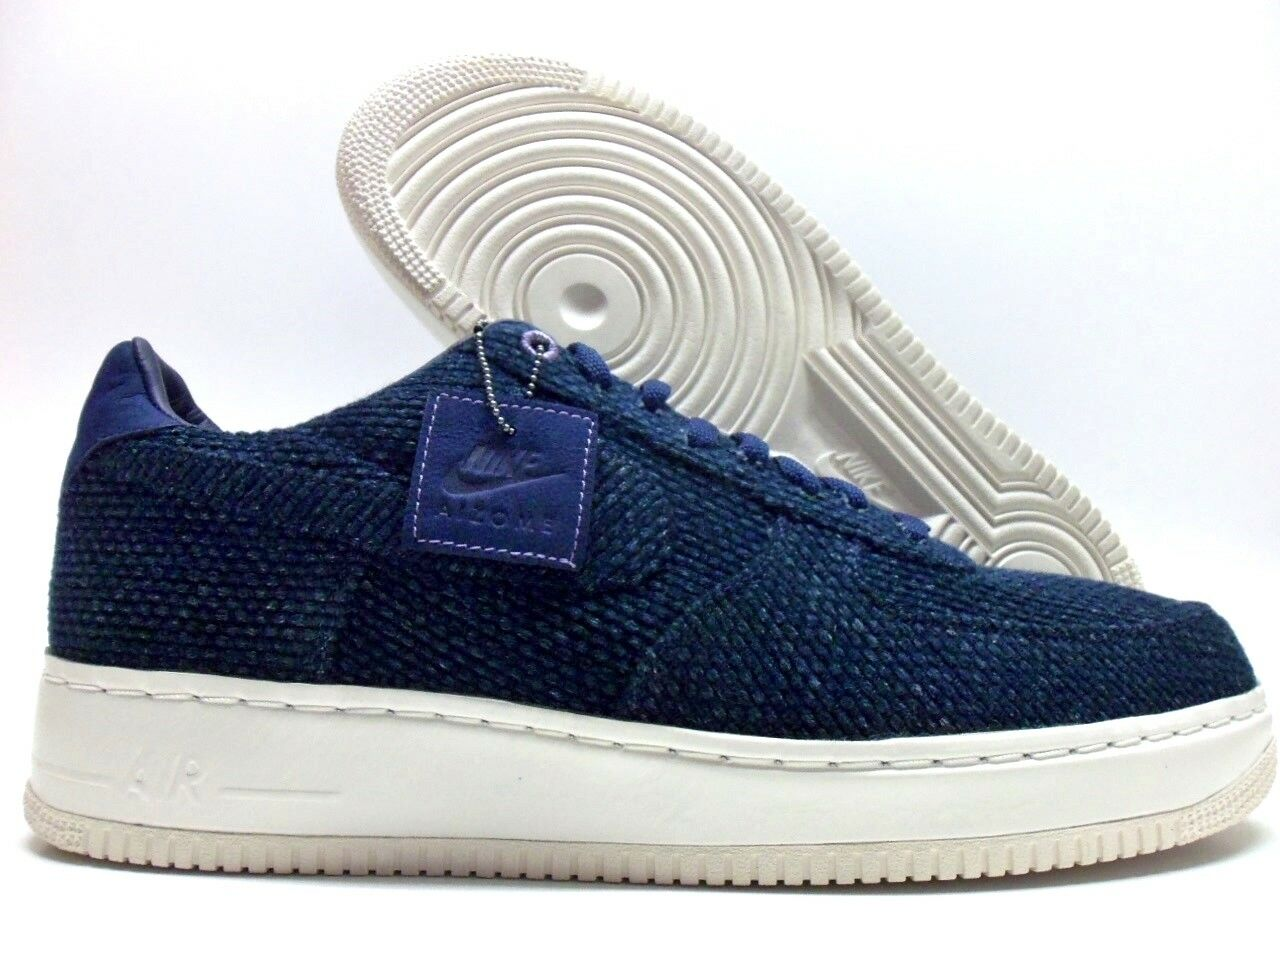 NIKE AIR FORCE 1 LOW AIZOME SASHIKO JAPAN MIDNIGHT NAVY SZ MEN'S 14 [AR4670-444]